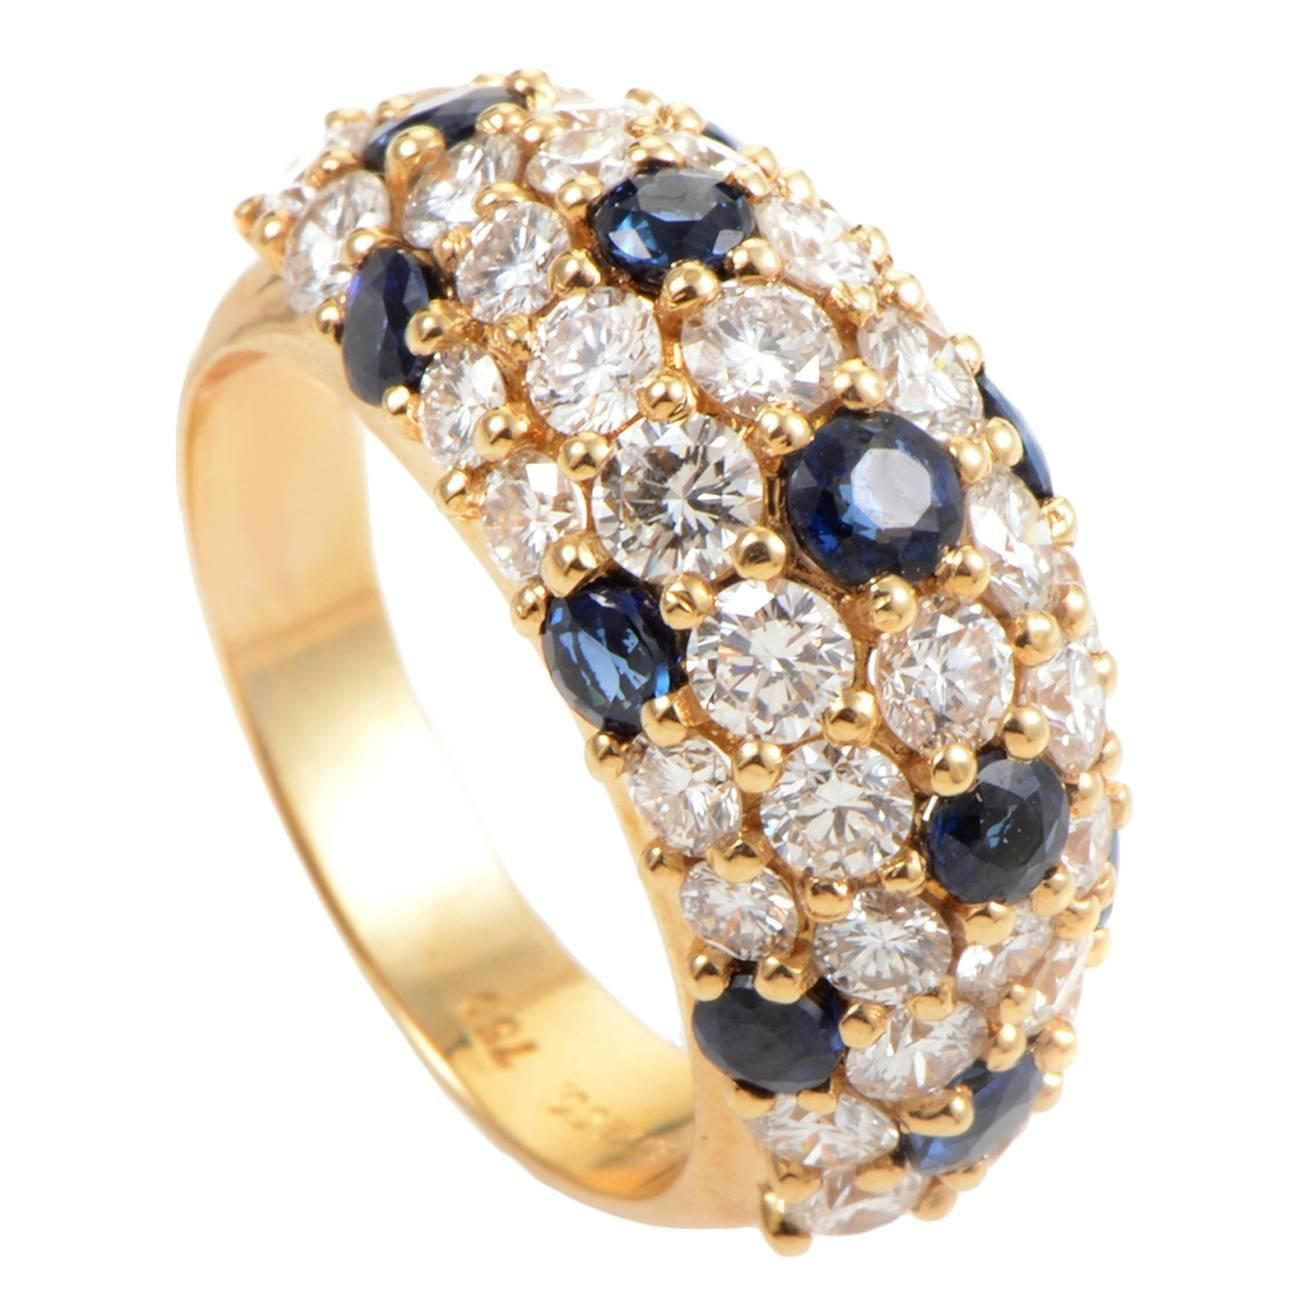 Tiffany & Co. sapphire diamond gold Band Ring   From a unique collection of vintage band rings at https://www.1stdibs.com/jewelry/rings/band-rings/